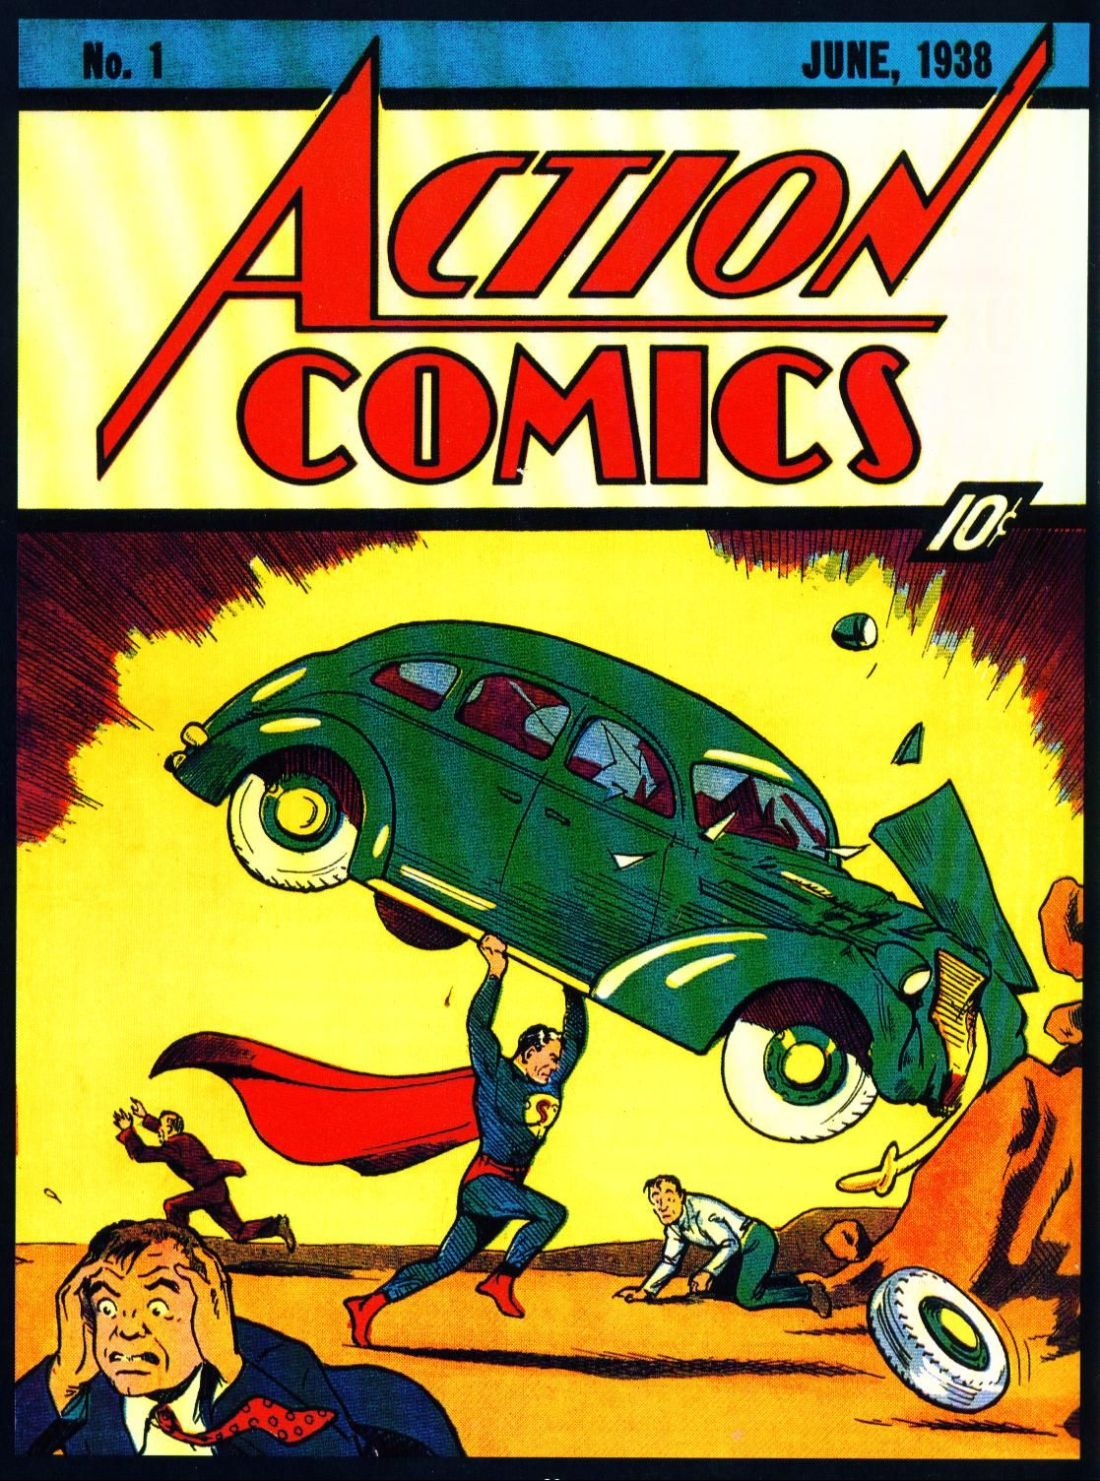 Superhero Stories - Action Comics #1